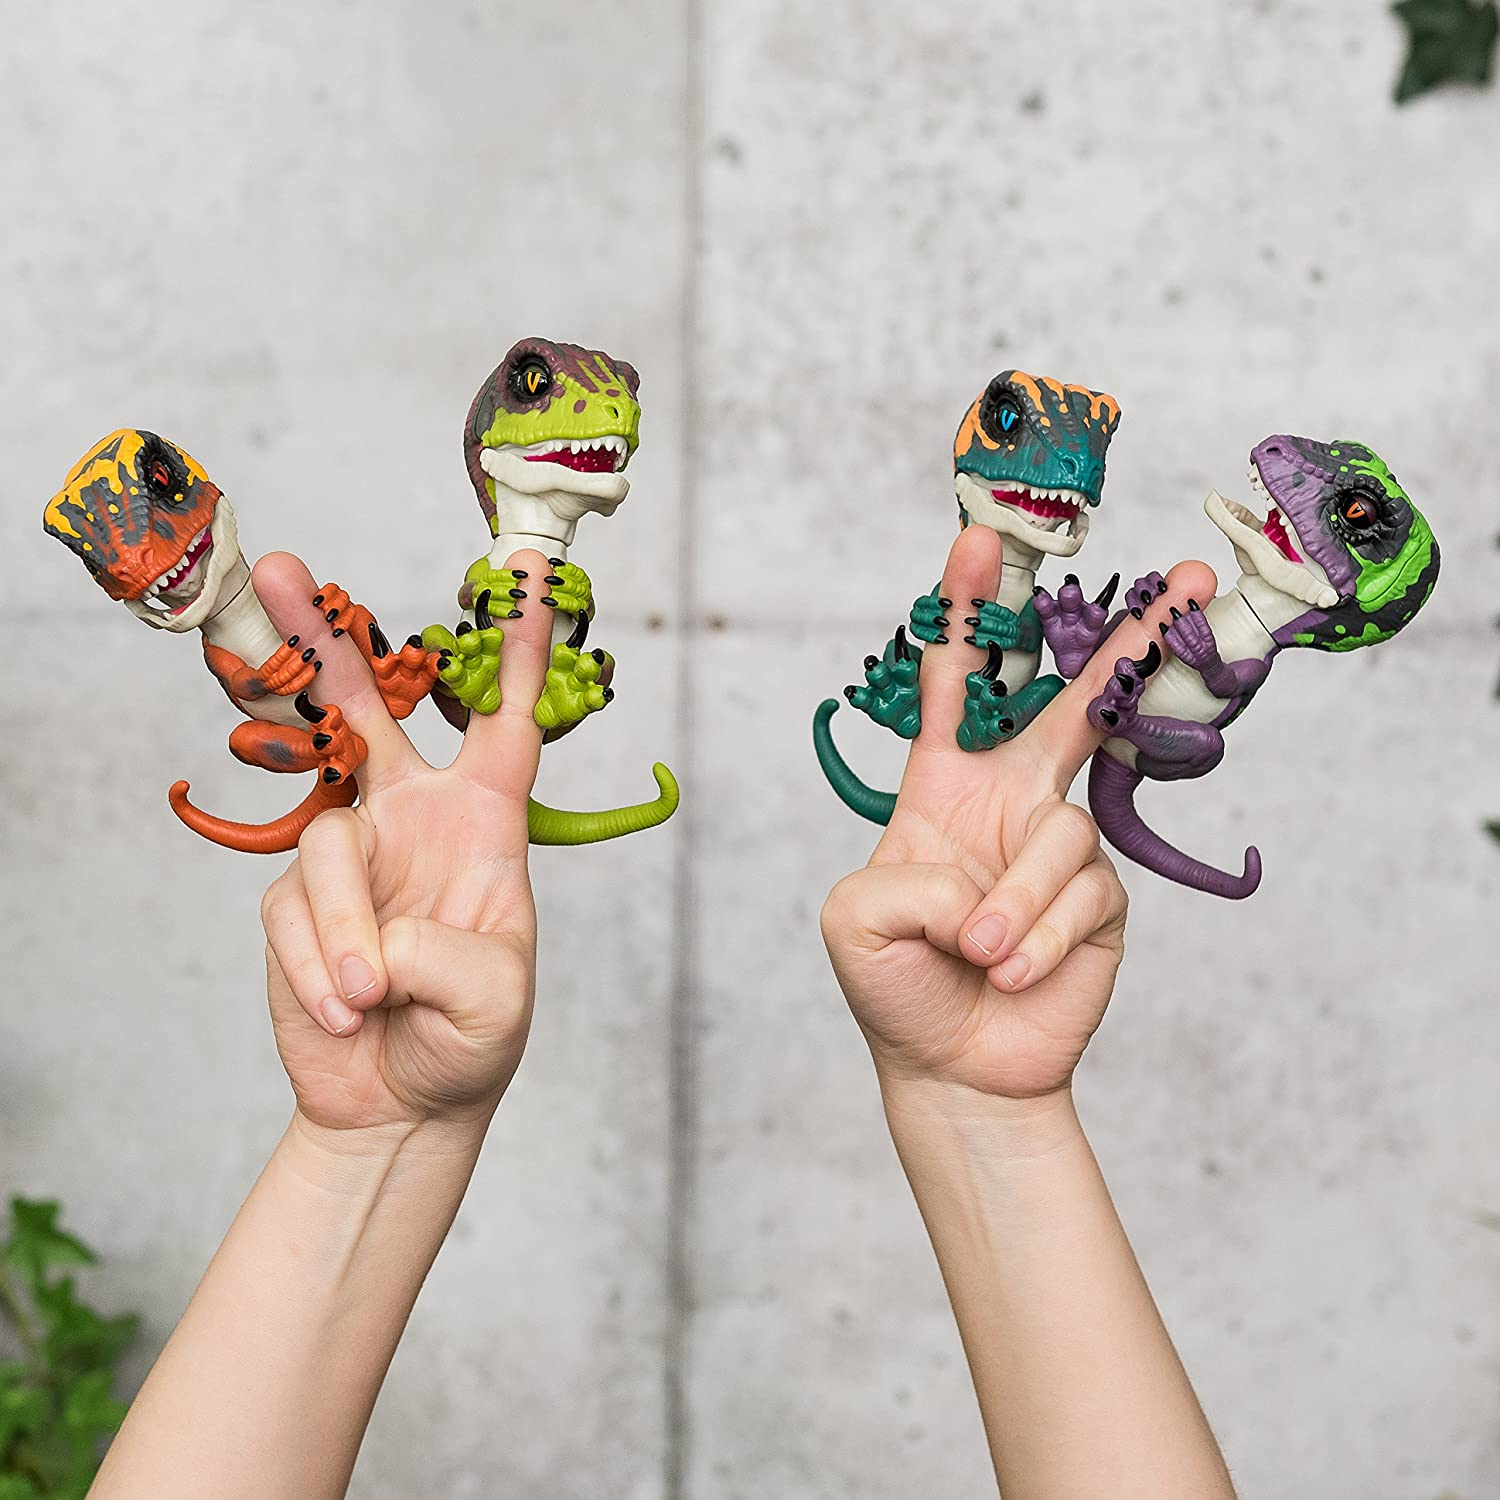 Untamed Dinosaur T-Rex Interactive Collectible Dinosaur Toys Finger Funny Gifts Kids Childes